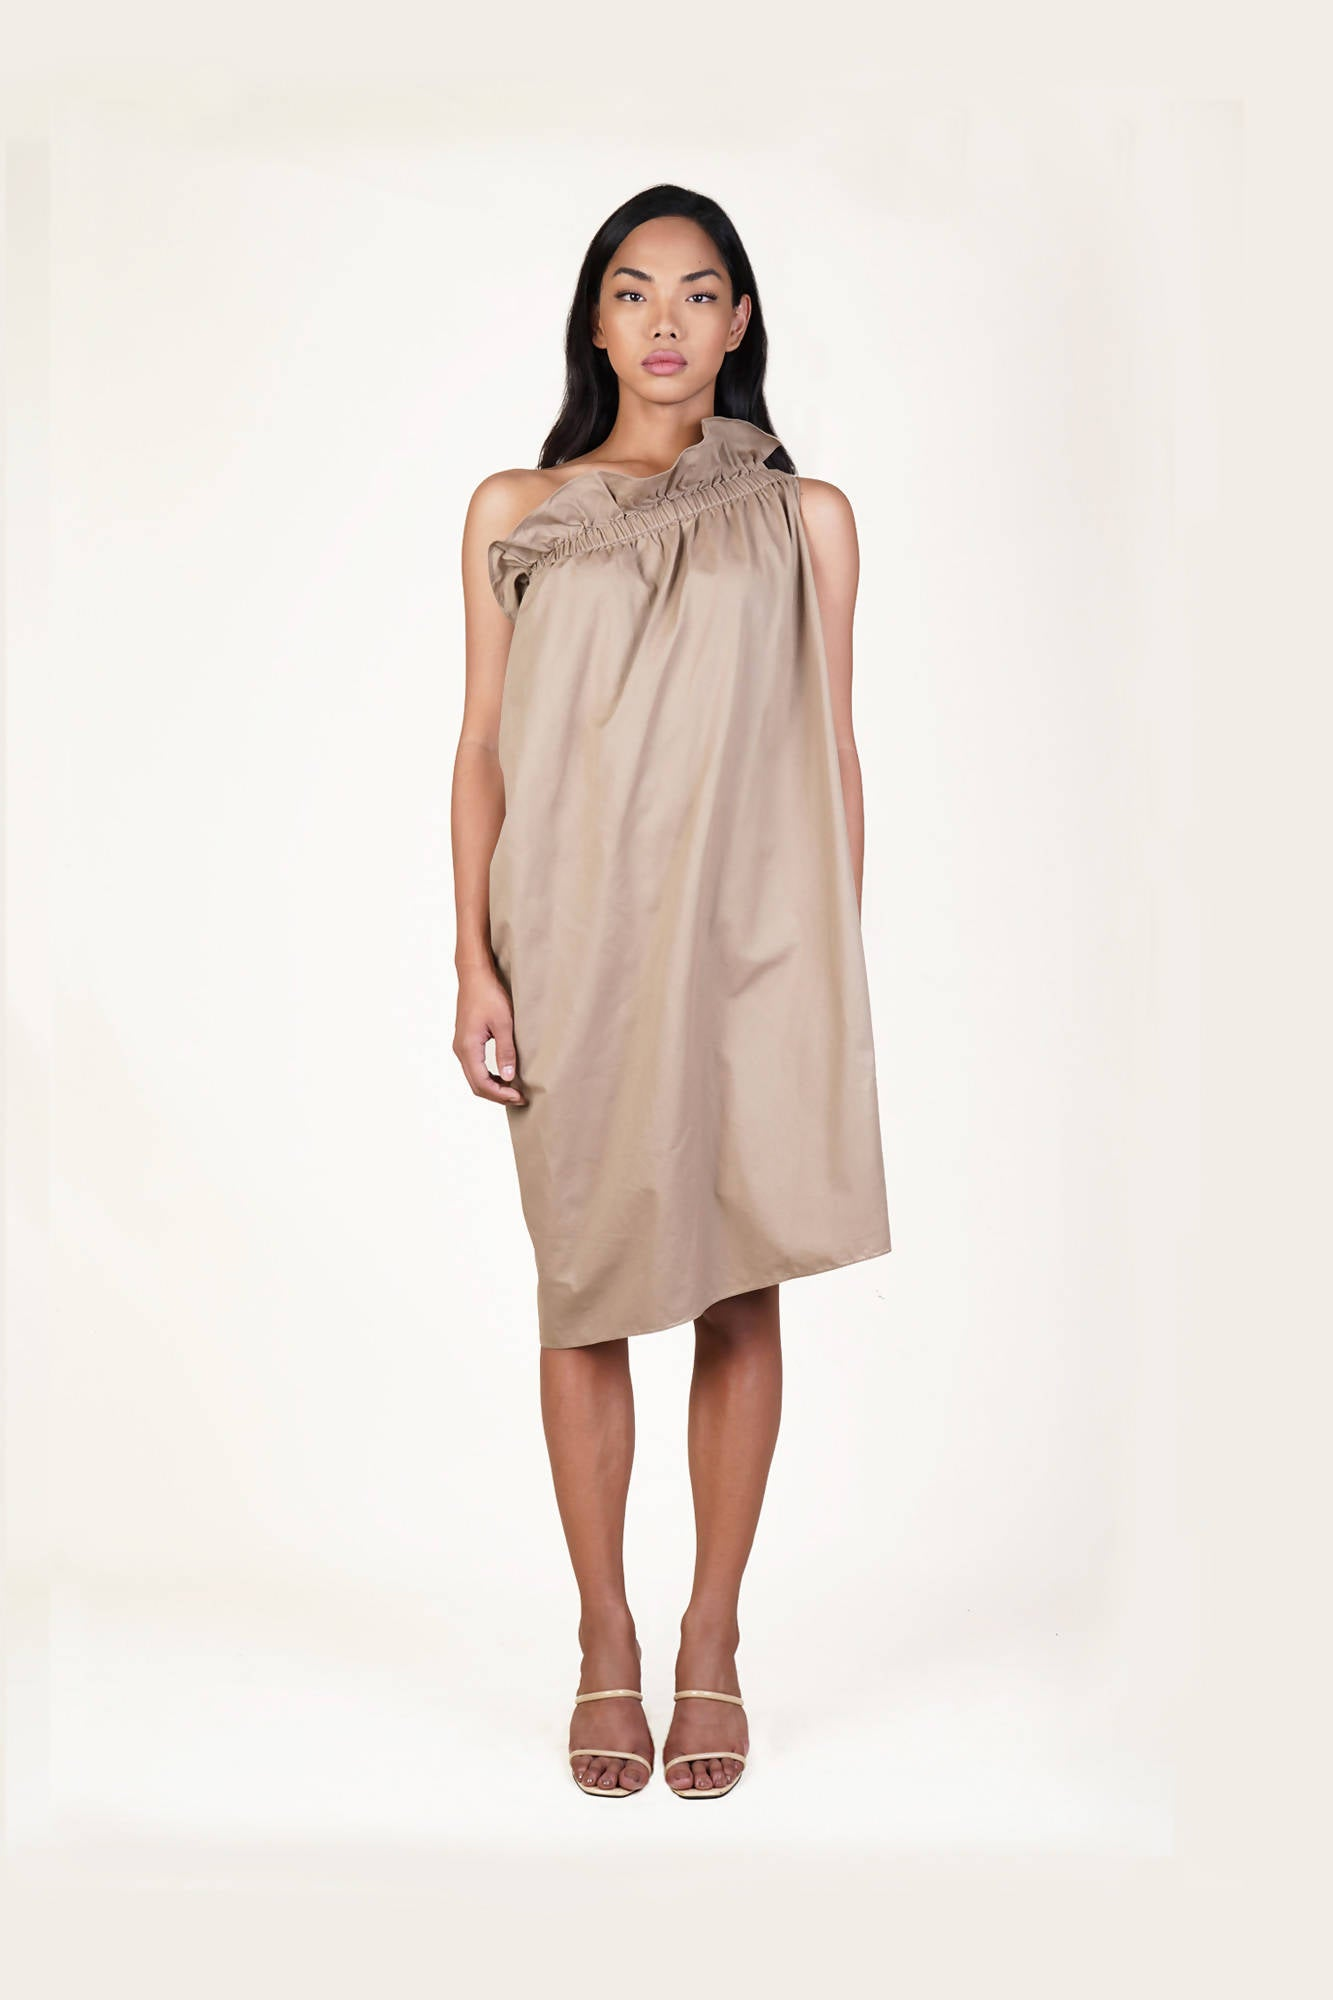 Gardena Dress in Khaki